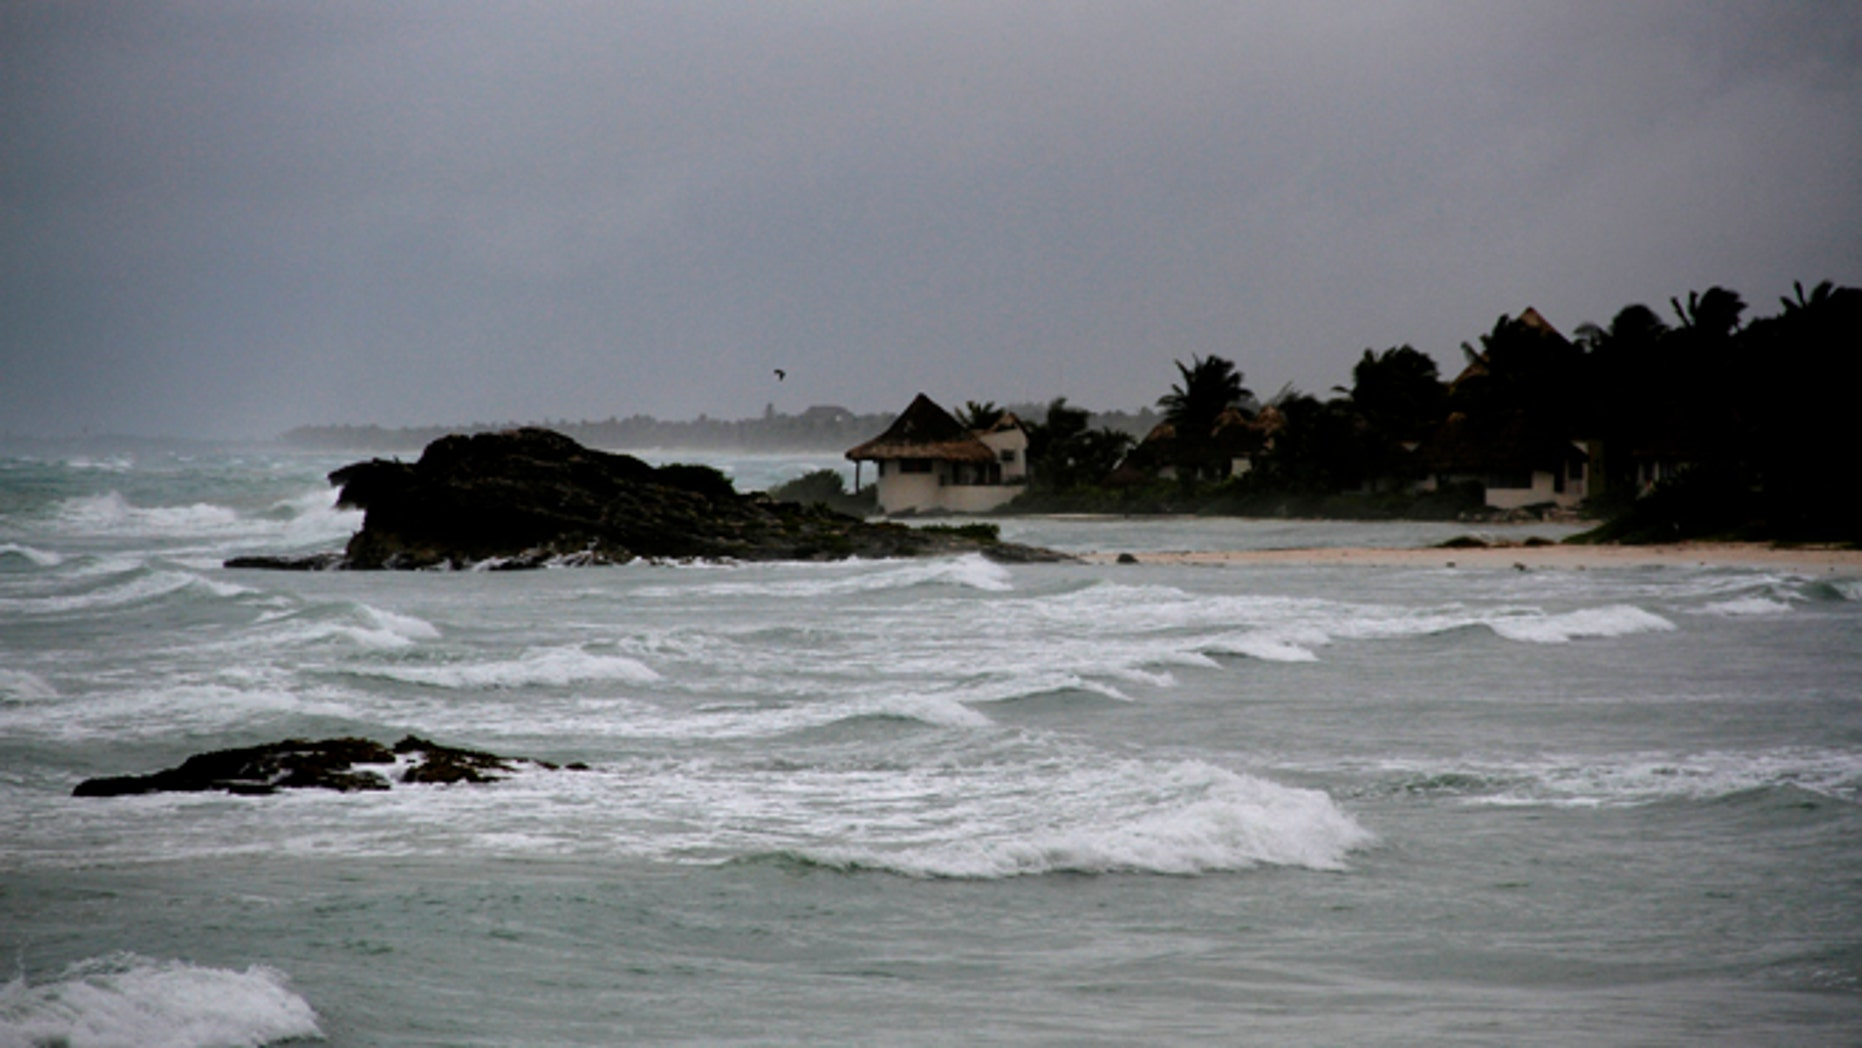 View of the beach in Tulum, Mexico, Tuesday, Aug. 7, 2012, as Tropical Storm Ernesto brings the threat of hurricane-force winds and torrential rains to the Caribbean coast. The heart of the storm was expected to hit south of Cancun and the Riviera Maya, though strong rain and winds were likely there, and officials prepared shelters there as a precaution. (AP Photo/Israel Leal)